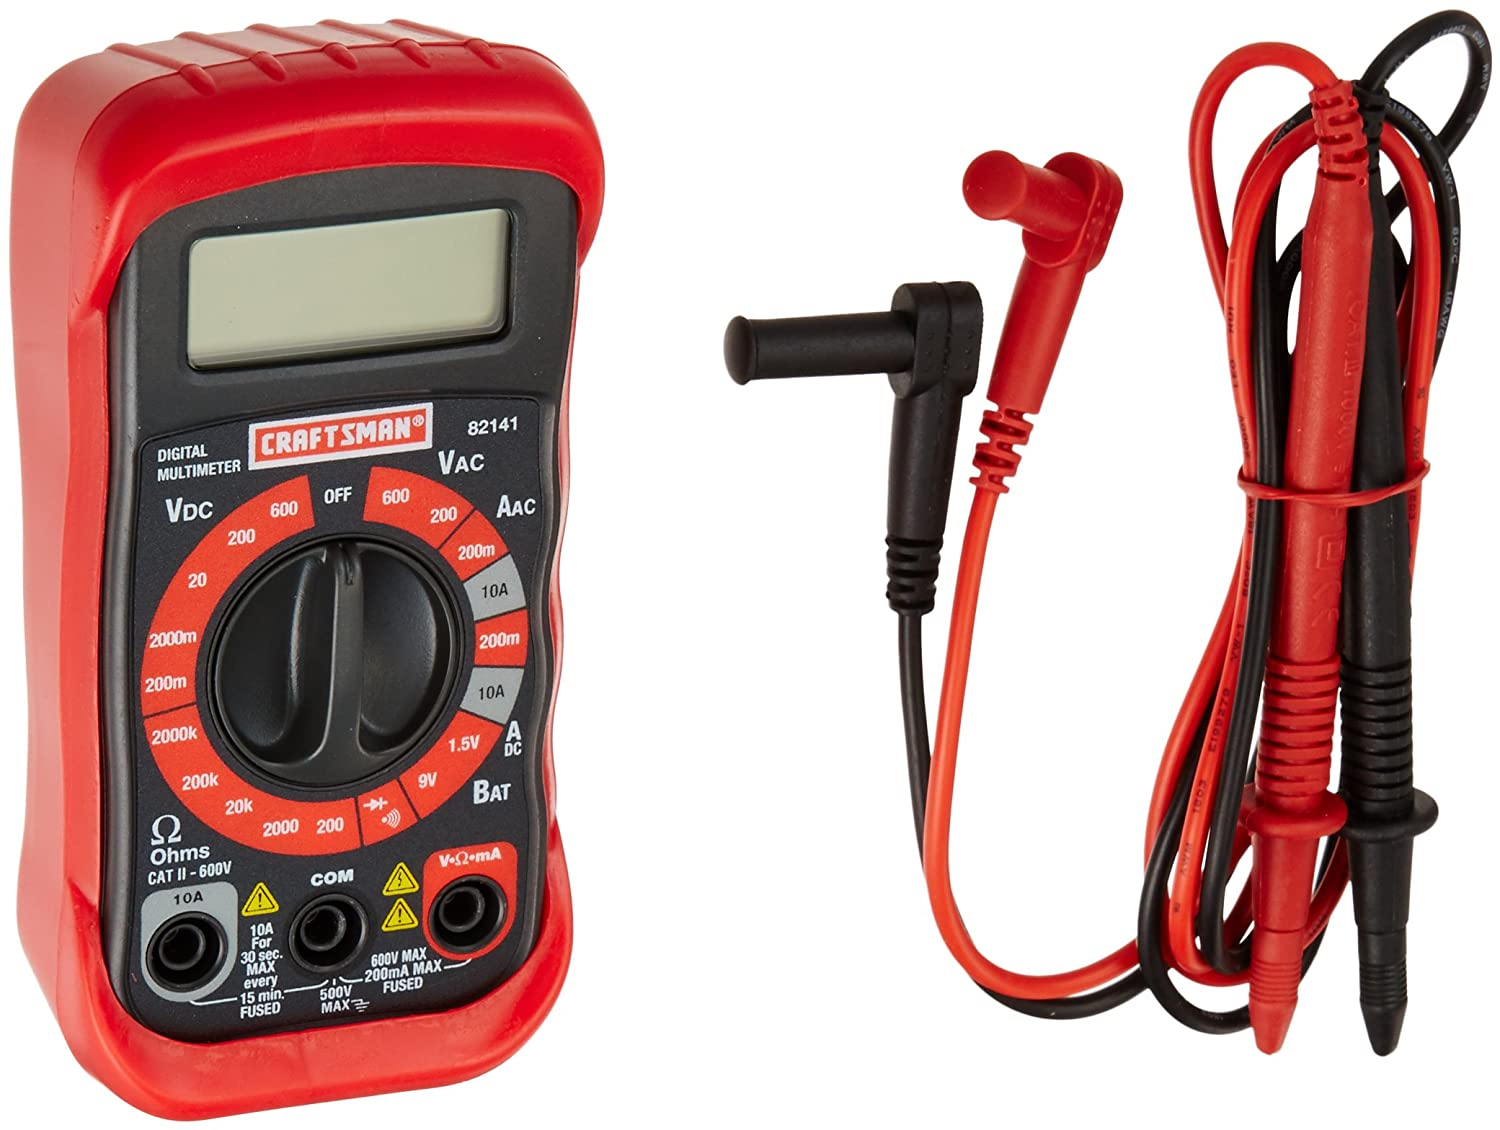 Craftsman 34-82141 Digital Multimeter with 8 Functions and 20 Ranges -  Science Lab Multiparameter Meters - Amazon.com